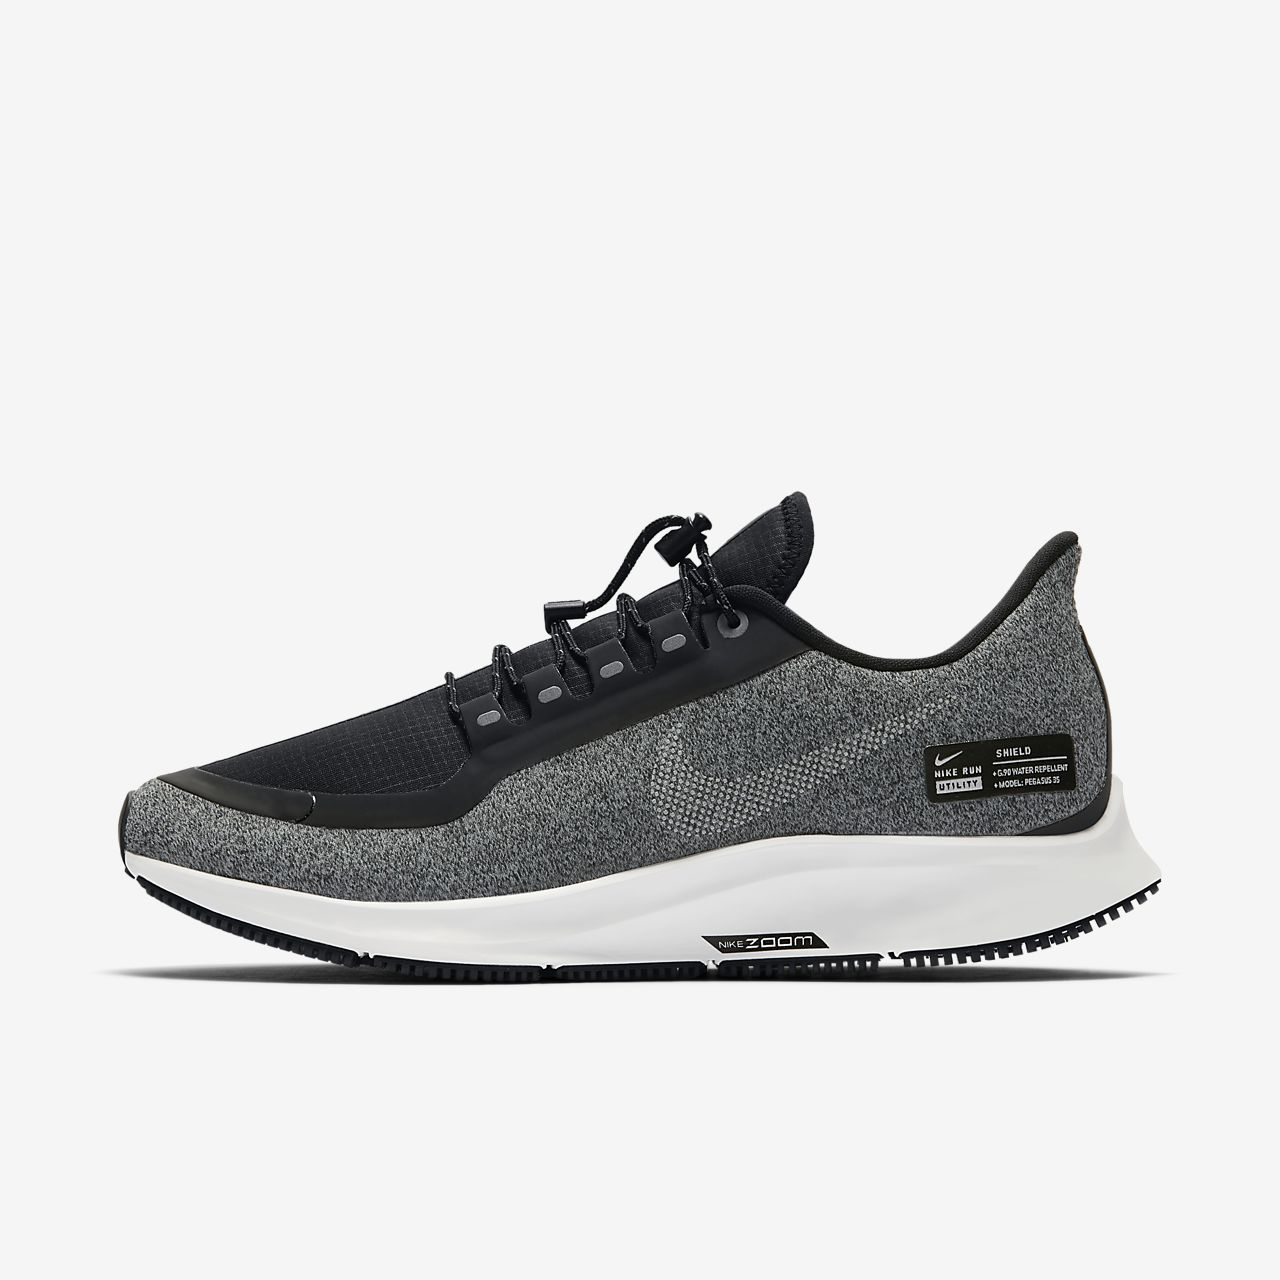 buy popular 5877f 55bac ... Chaussure de running Nike Air Zoom Pegasus 35 Shield Water-Repellent  pour Femme